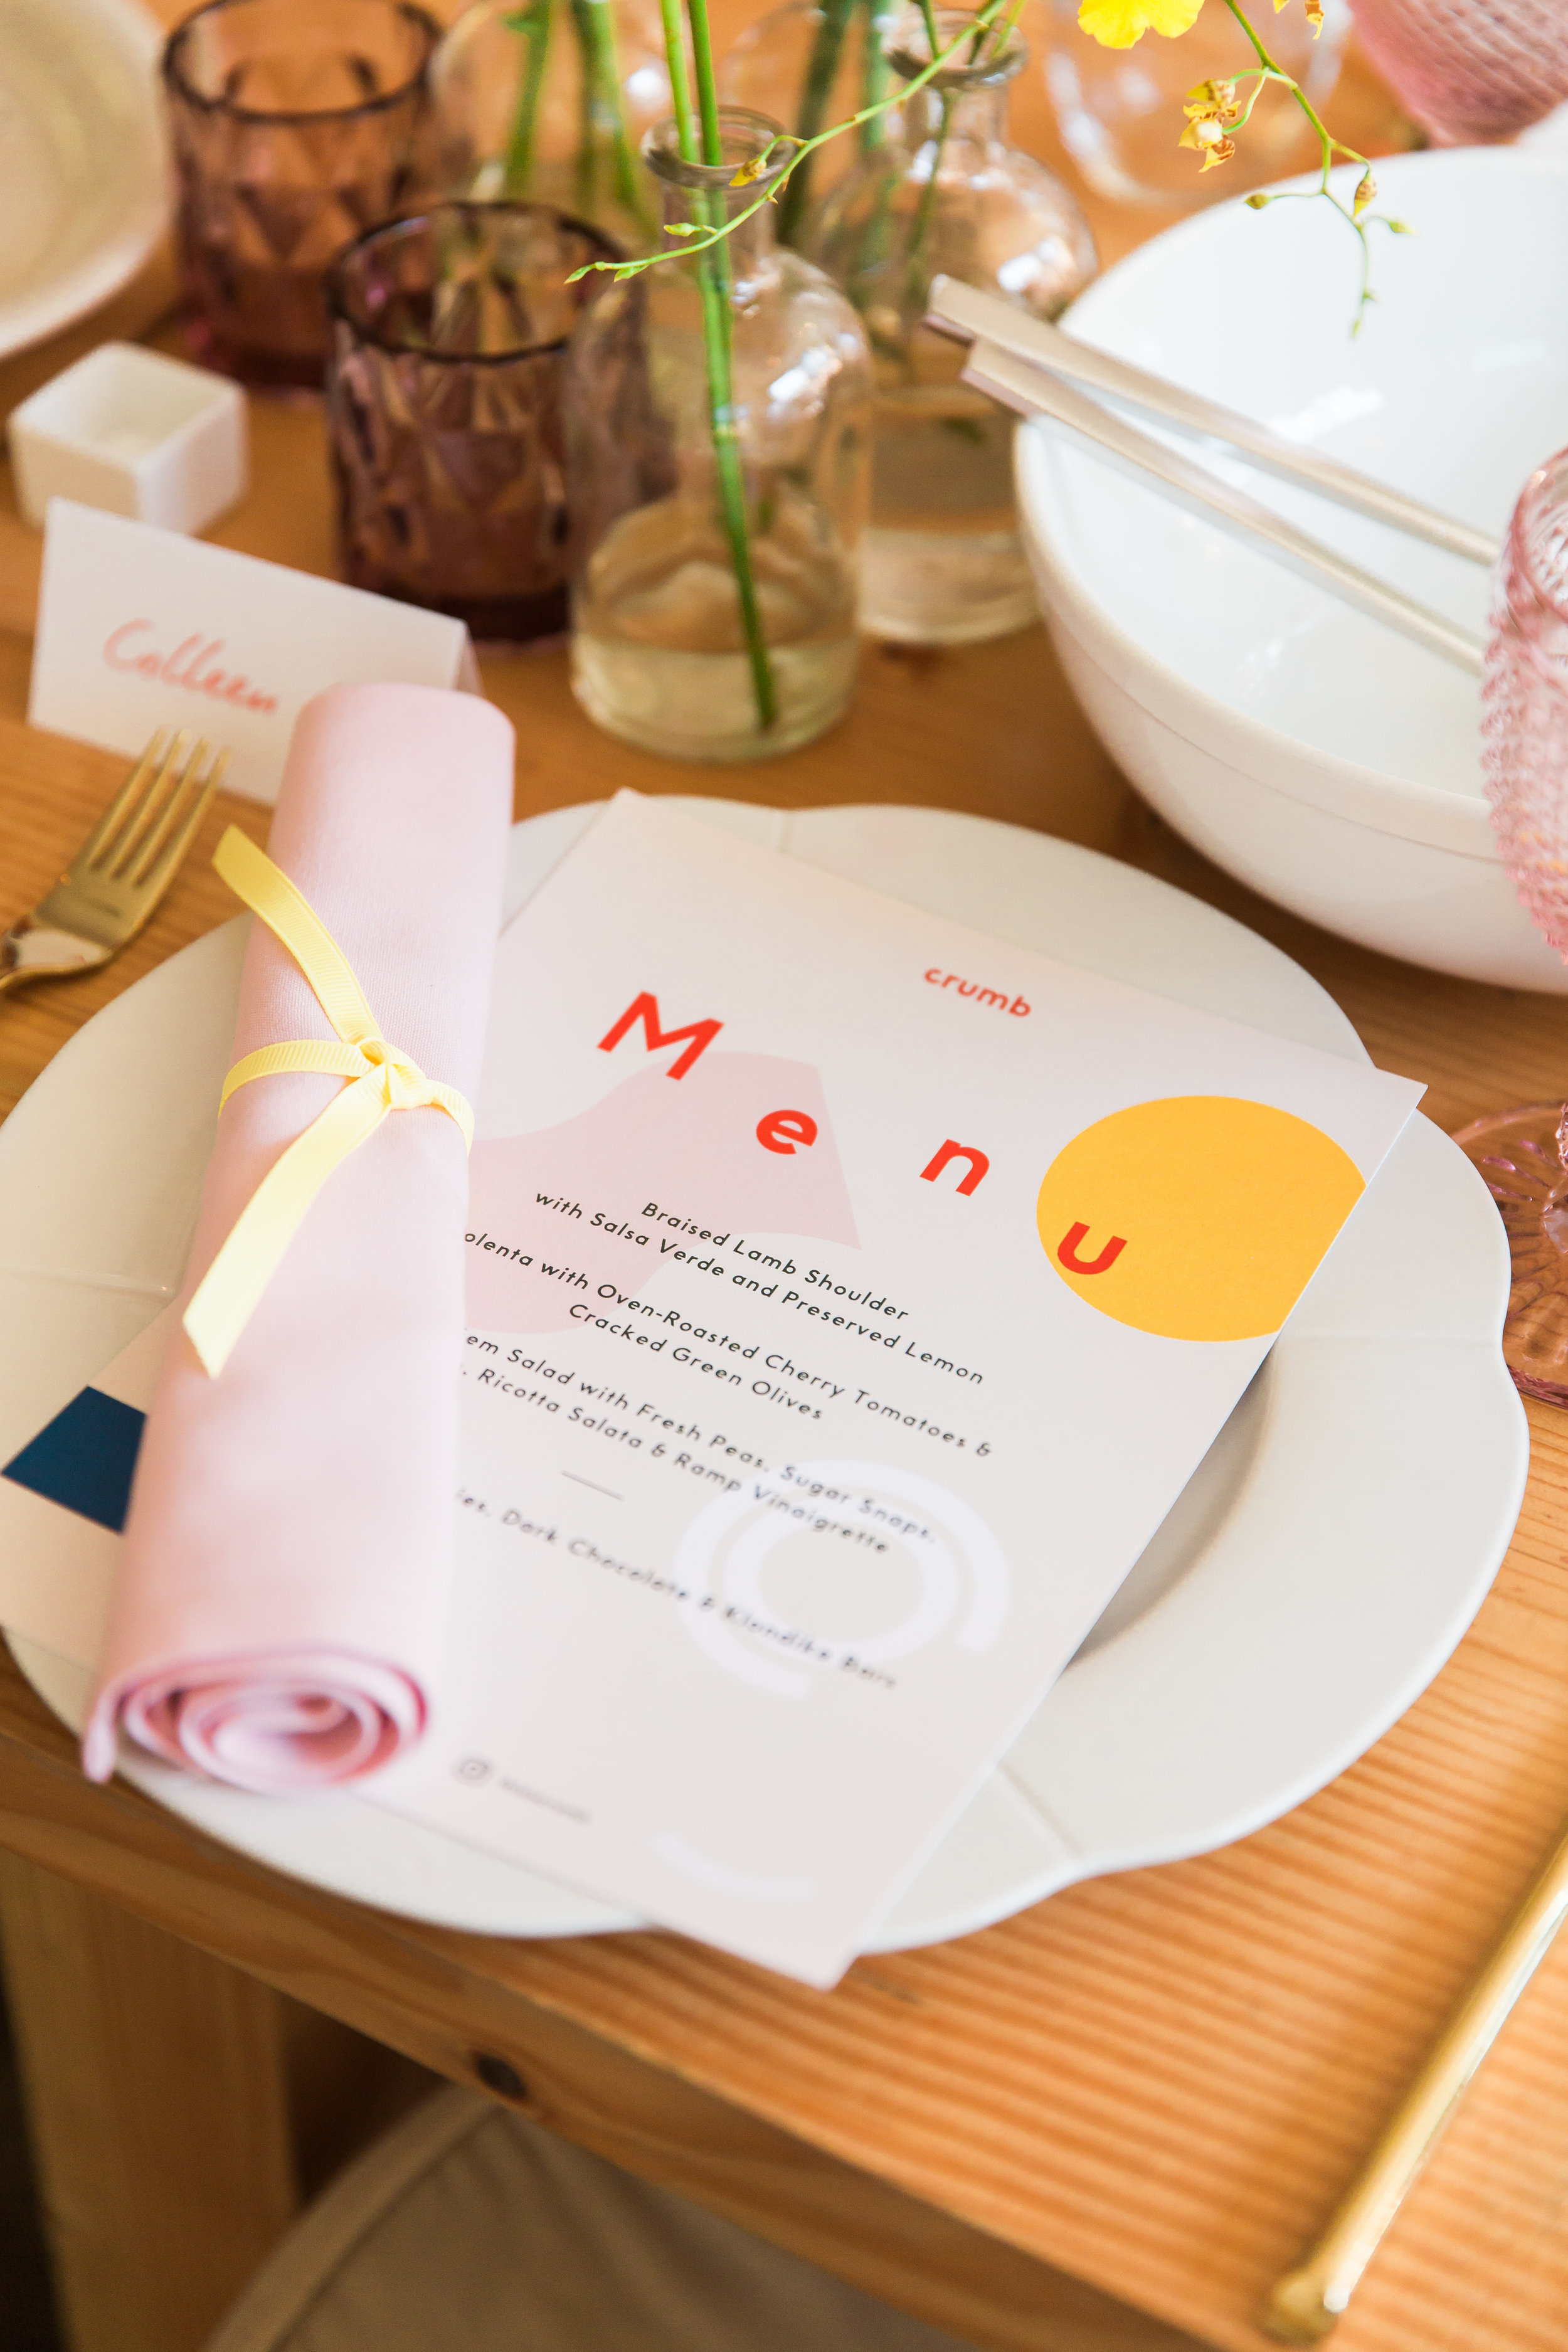 Tablesetting by Dancing & Dessert